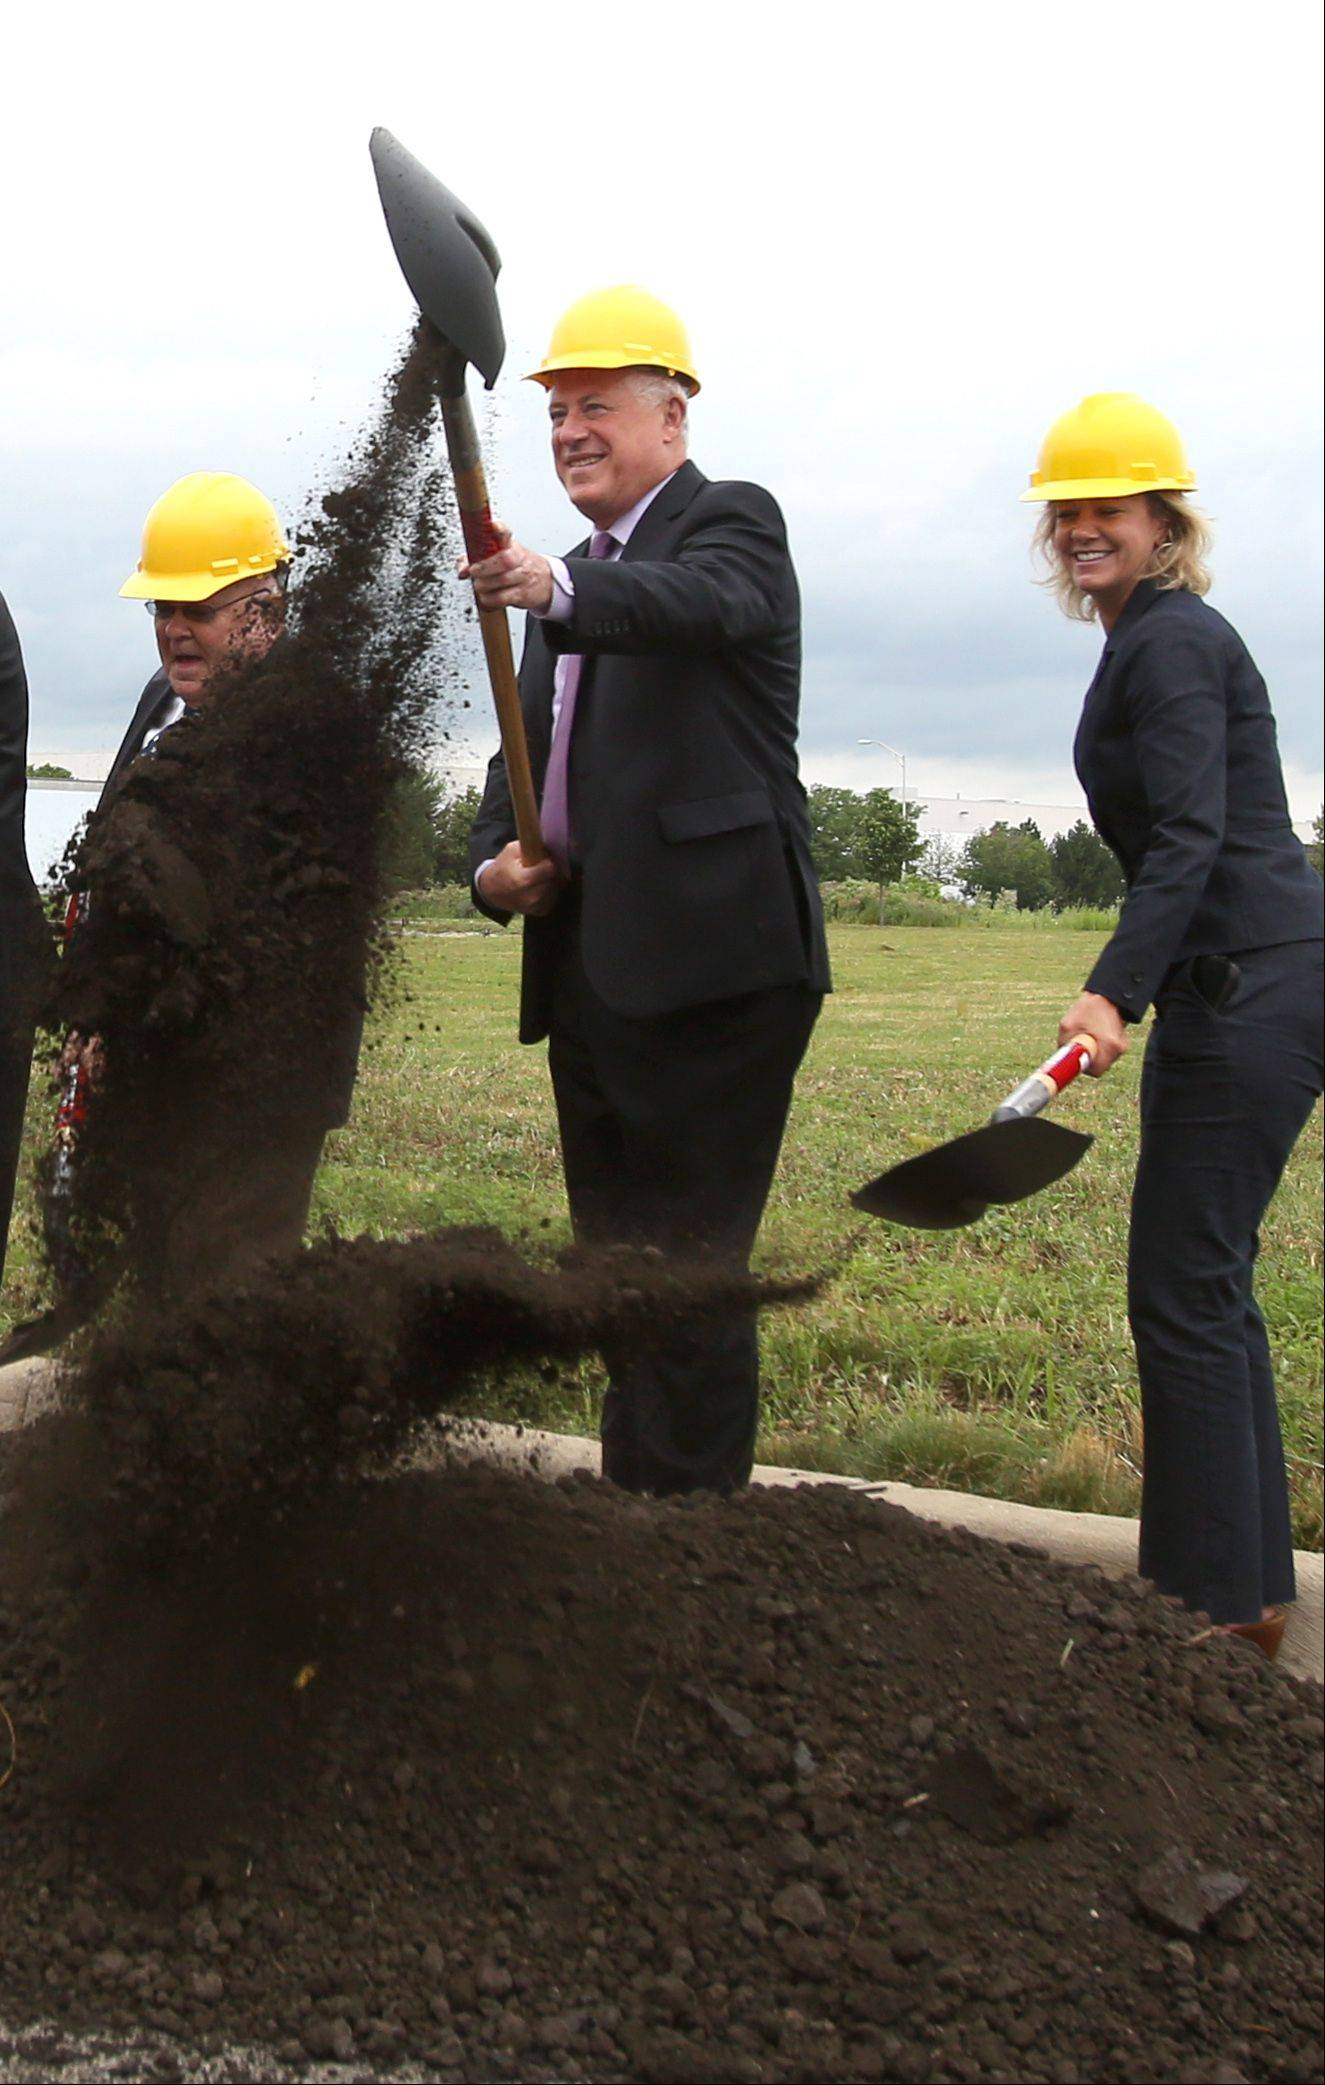 Gov. Pat Quinn and 42nd District state Rep. Jeanne Ives help break ground on a new $1.18 million environmental collection center in Naperville, which will benefit from $900,000 in state funding Quinn announced Friday.